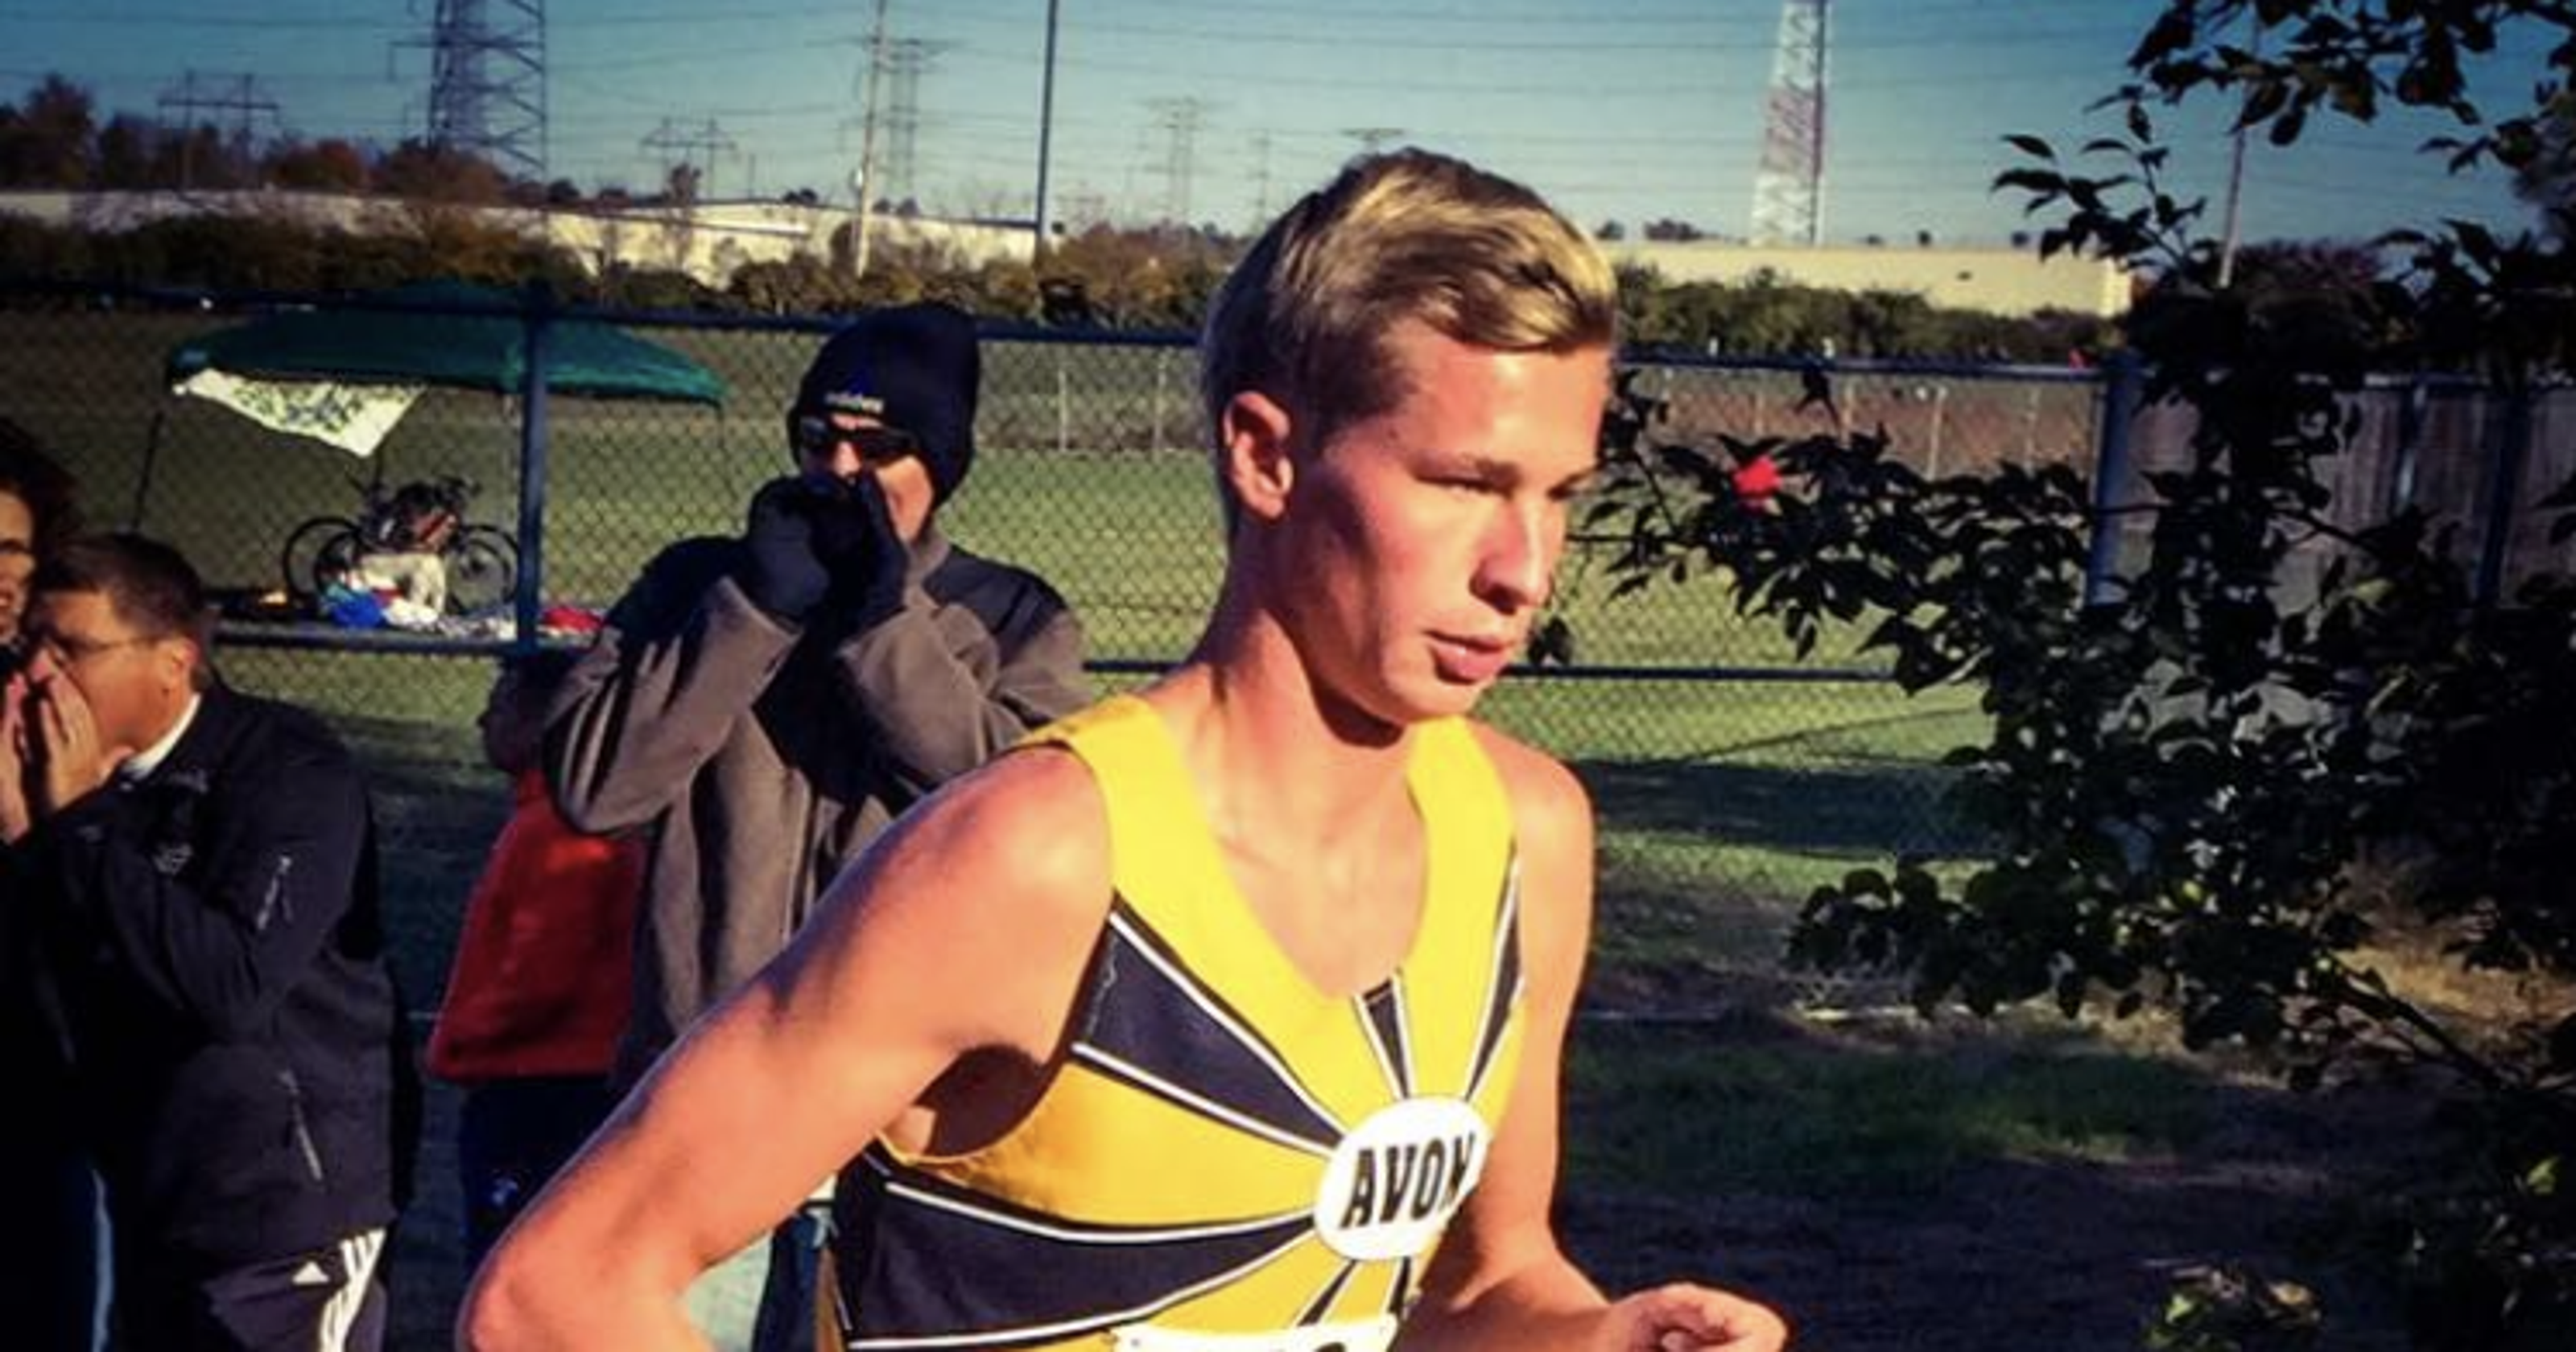 Cancer getting a run for its money from ex-Avon track star